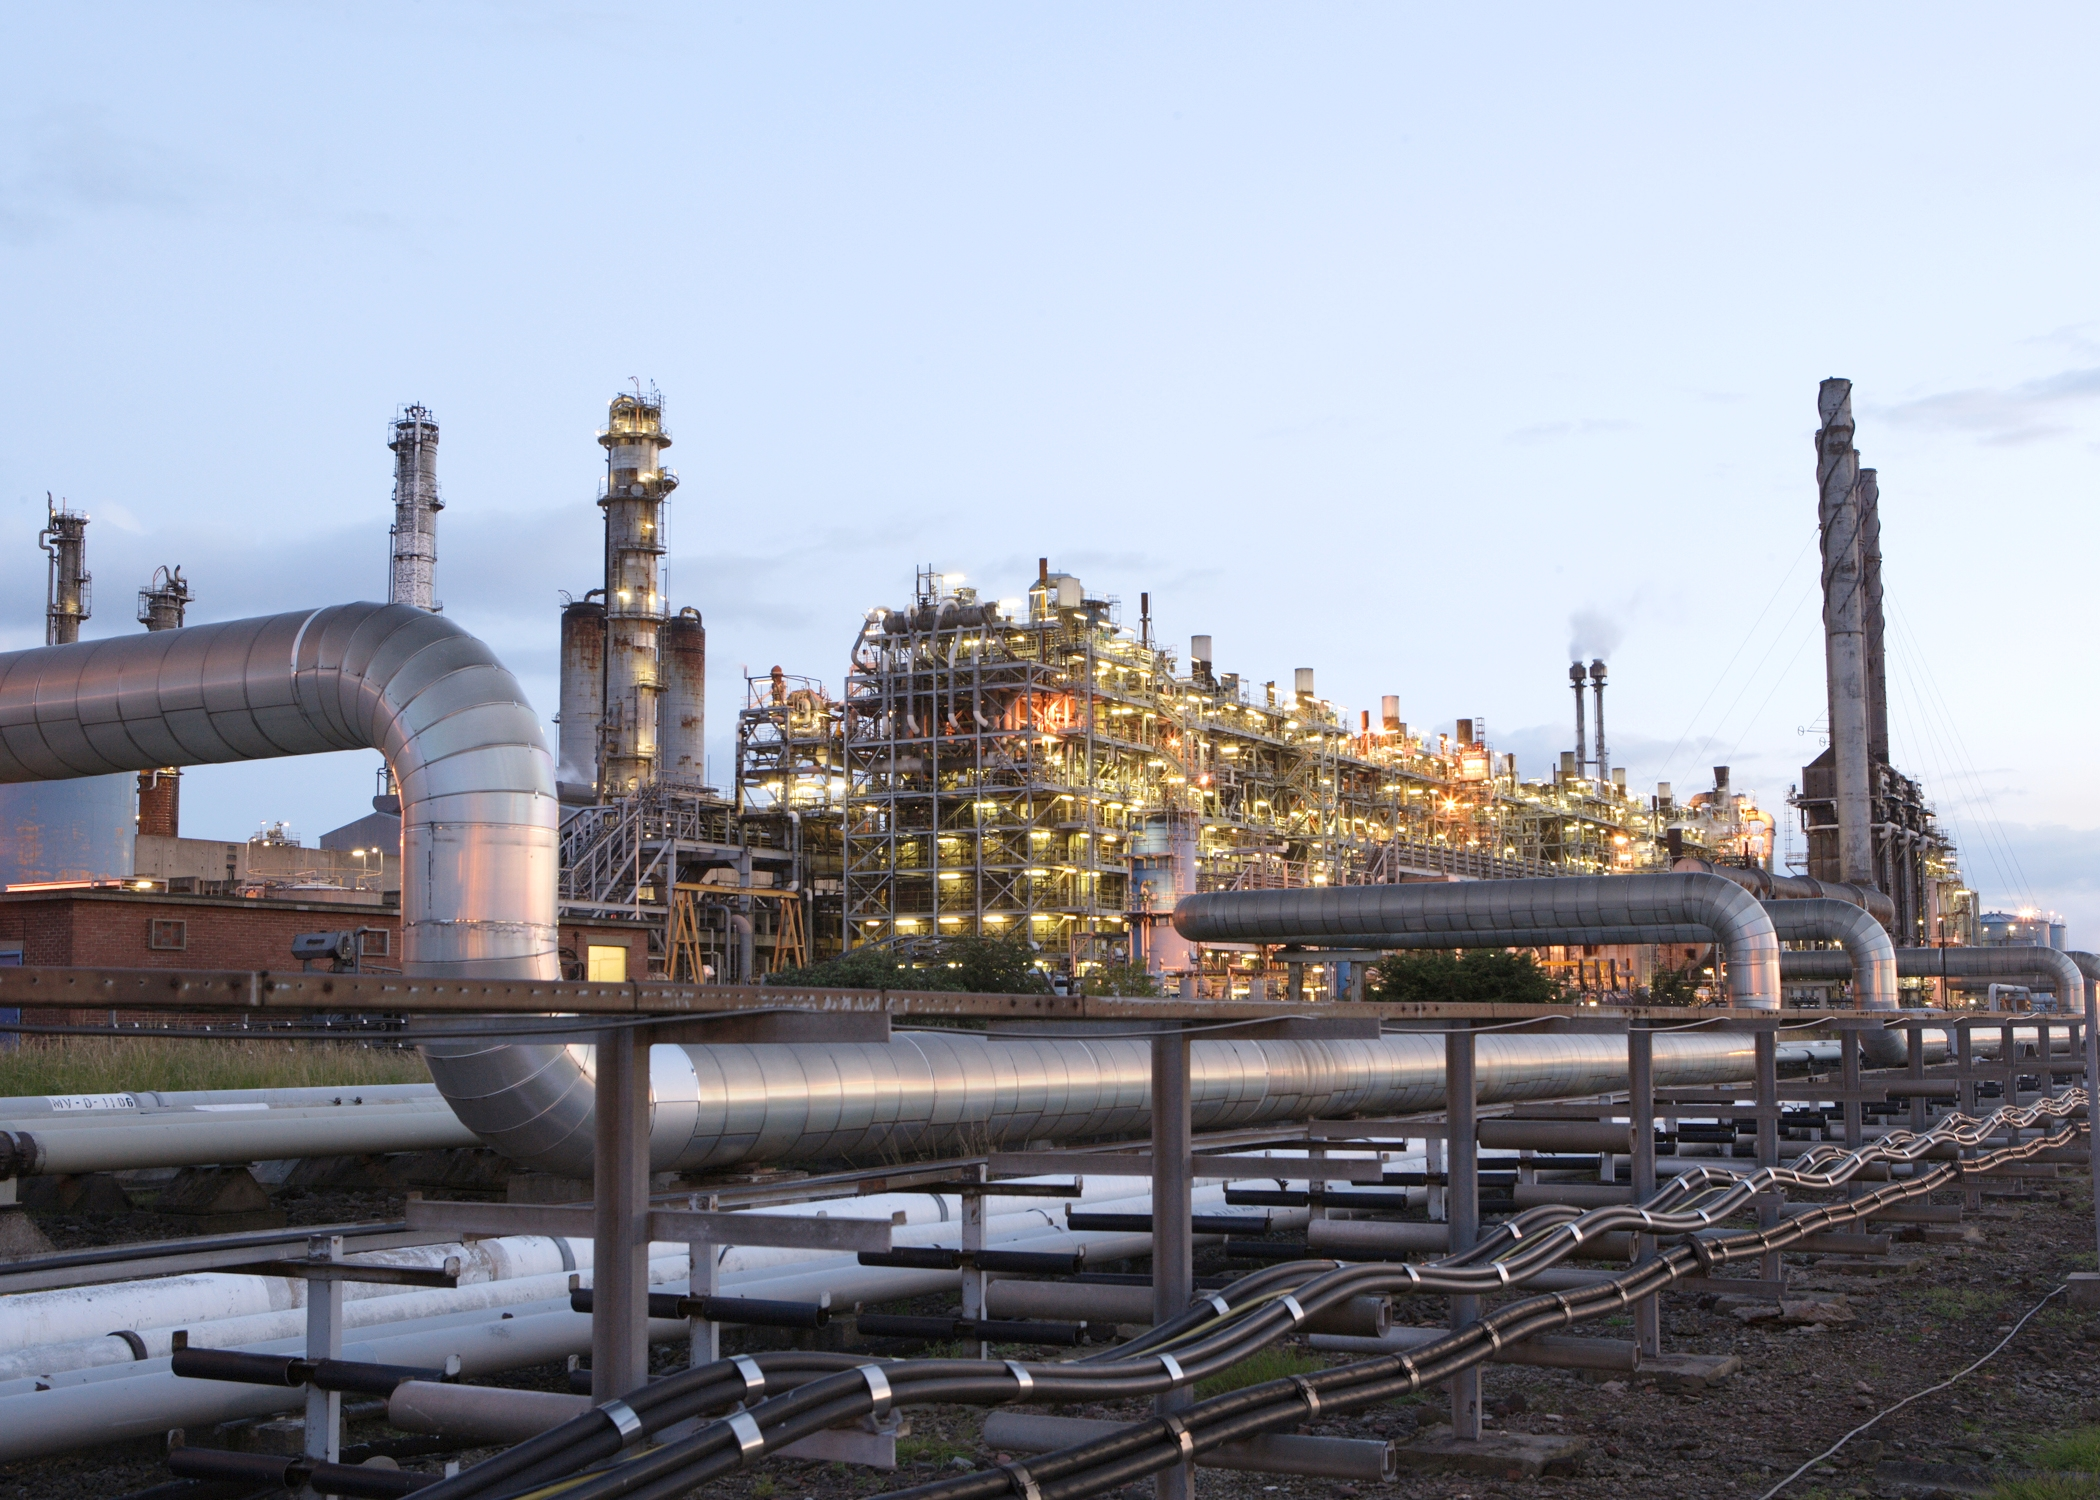 Saudi Arabia's SABIC complete ethane gas project at Wilton